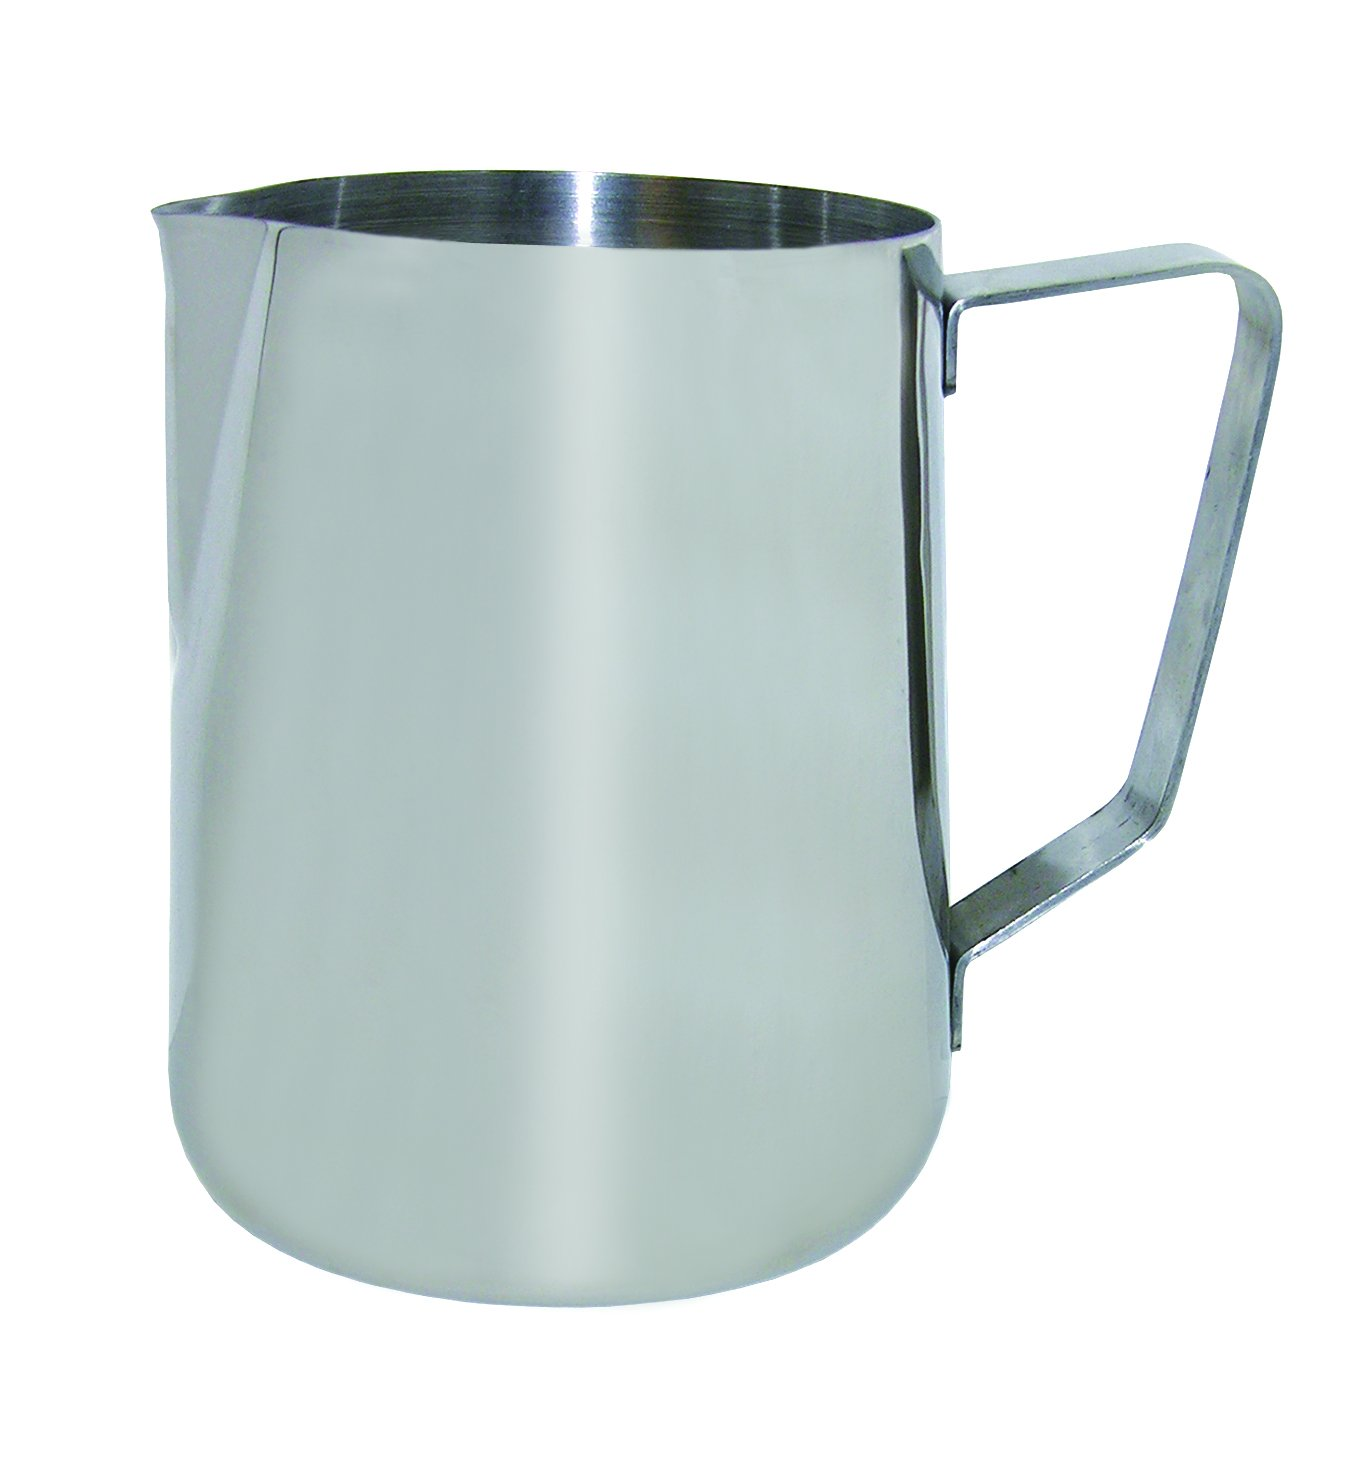 66 Oz Stainless Steel Frothing Pitcher by Update International